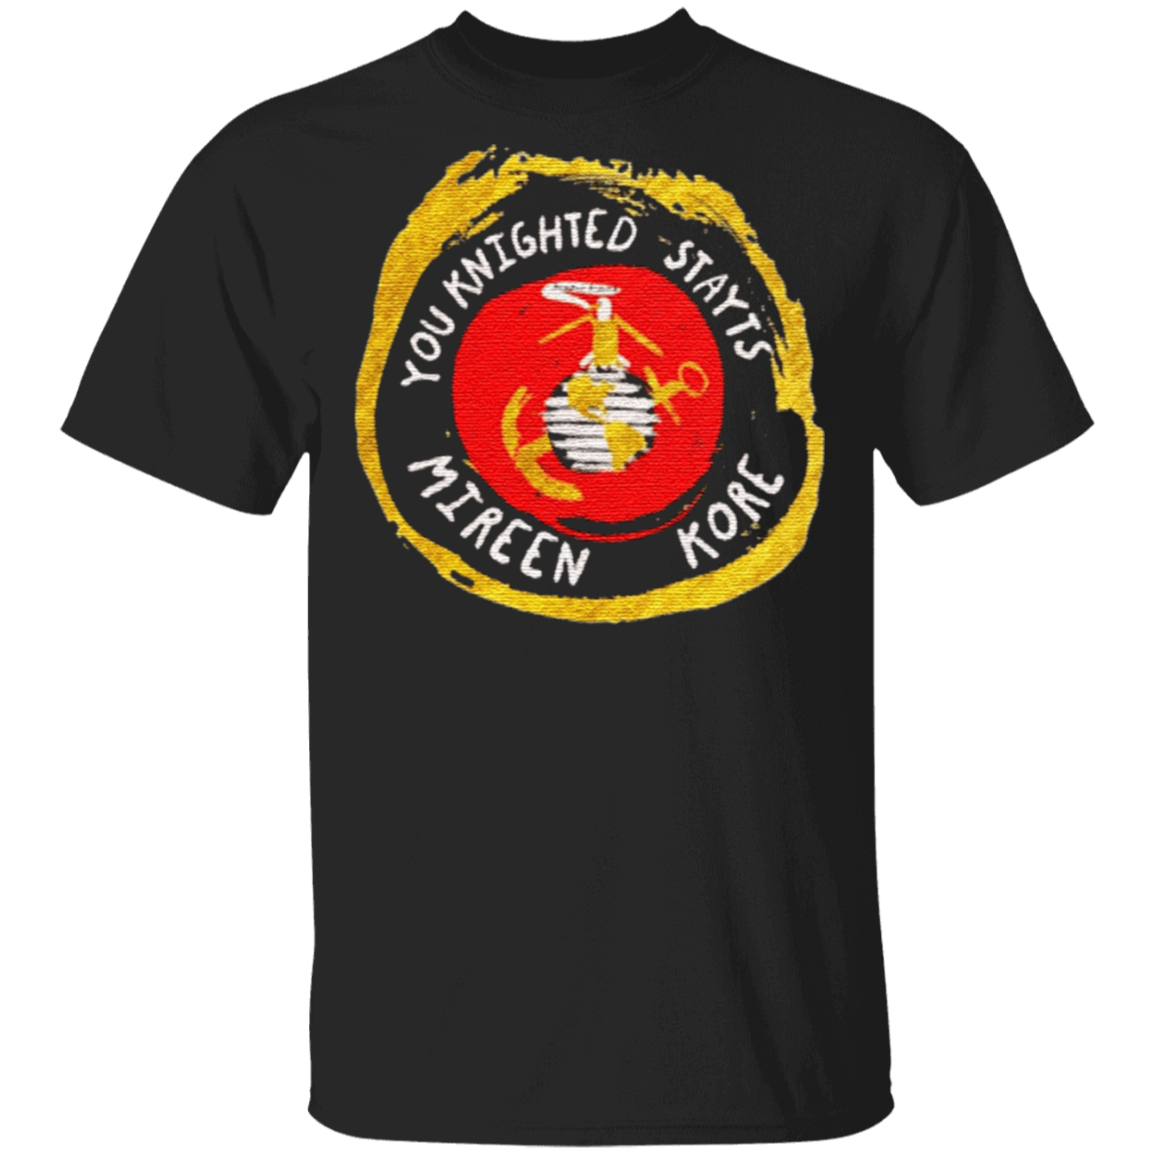 You Knighted Stayts Mireen Kore T Shirt